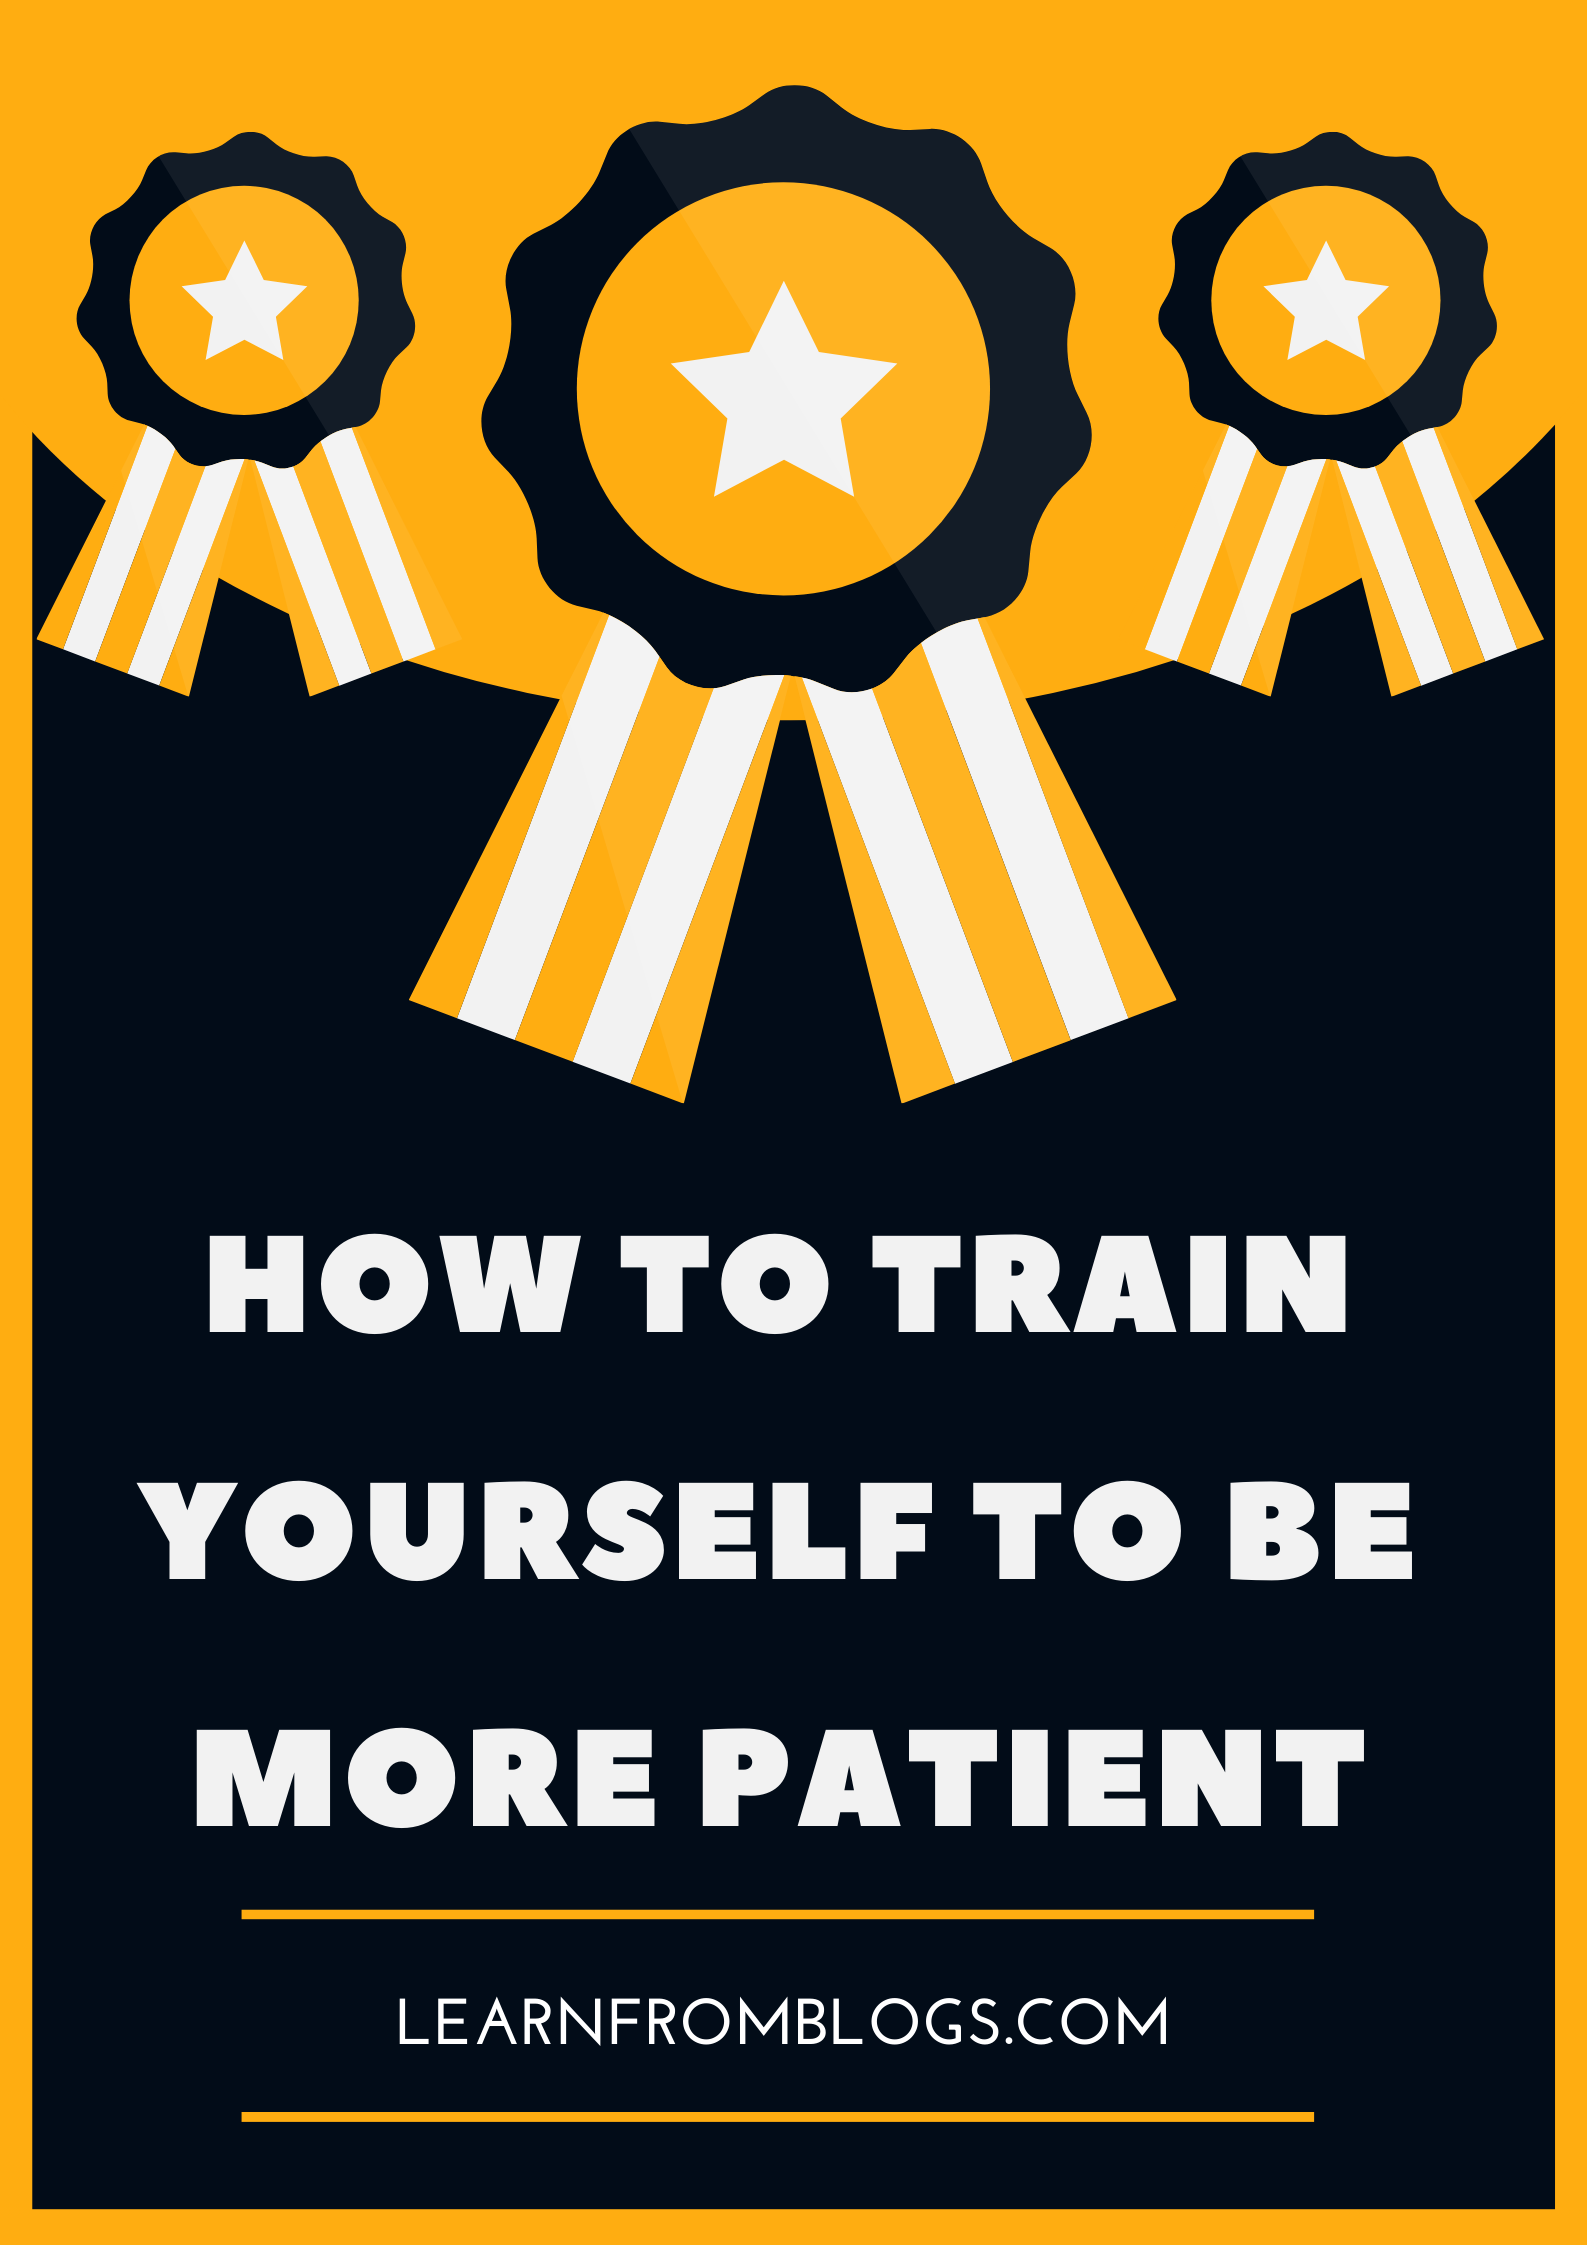 How To Train Yourself To Be More Patient.png